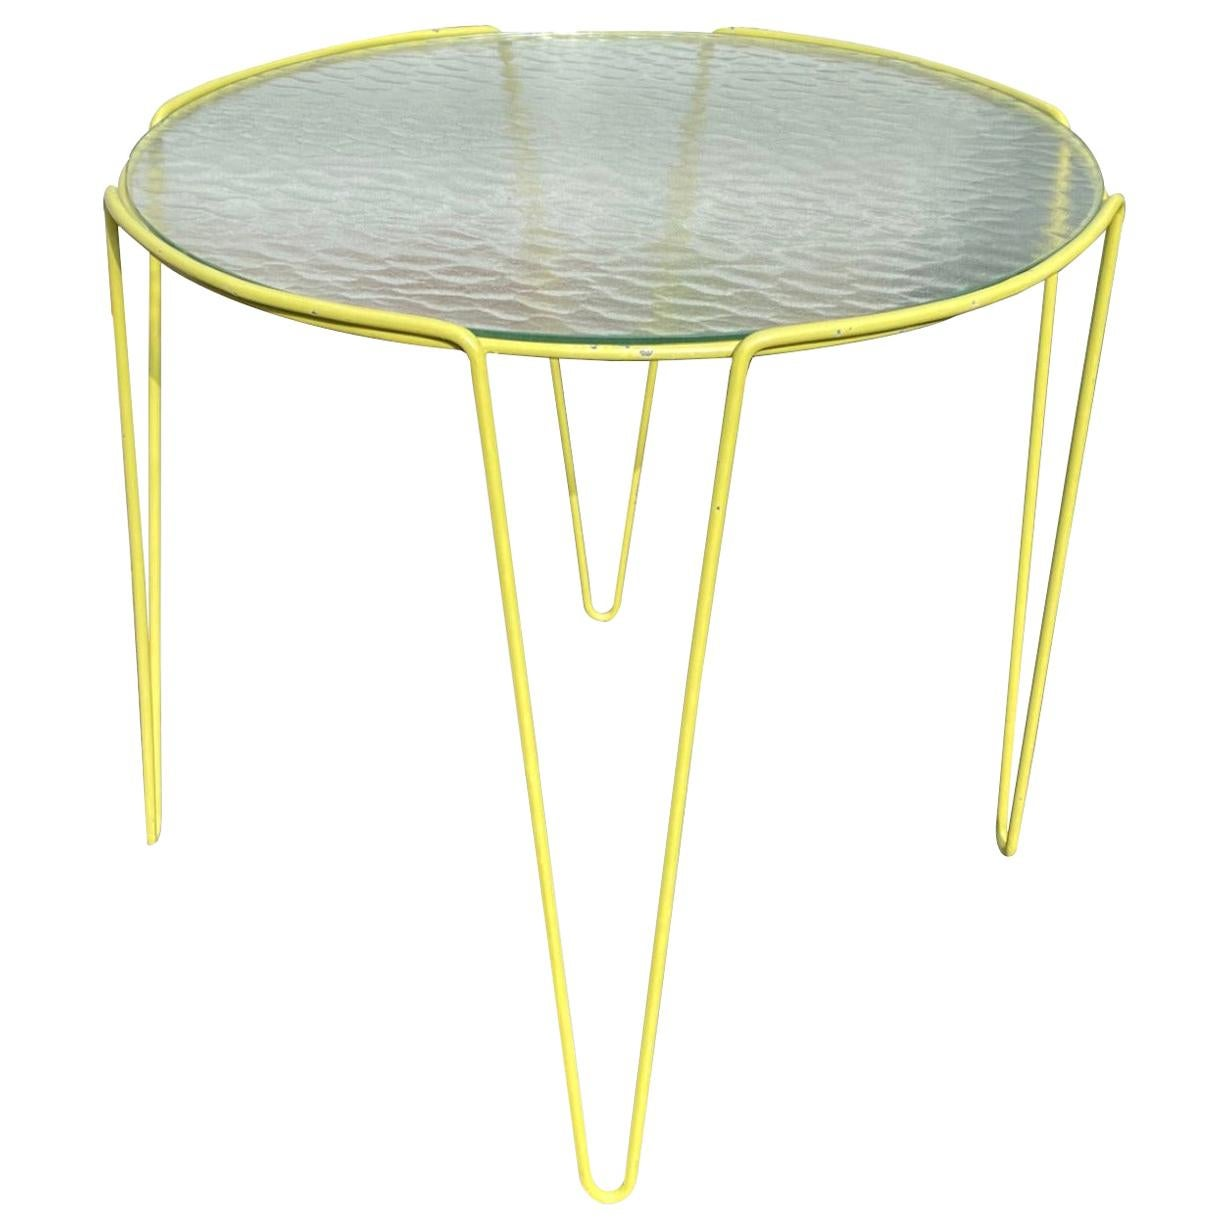 Large Unica Side Table by Arnold Bueno de Mesquita for Spurs, circa 1955